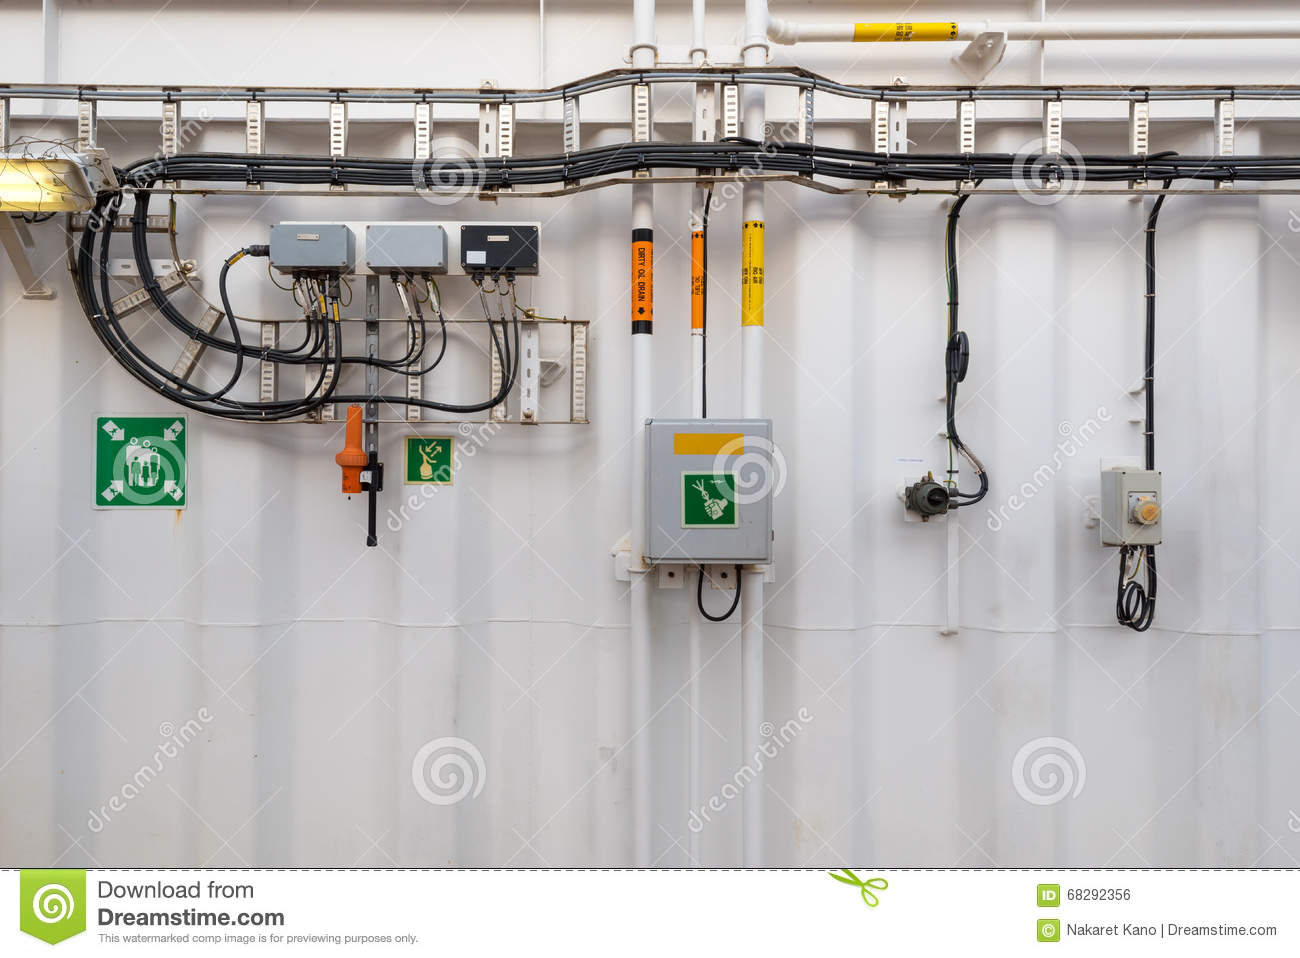 Industrial Electrical Junction Boxes With Air And Fuel Pipes On Home Wiring Box Download Stock Photo Image Of